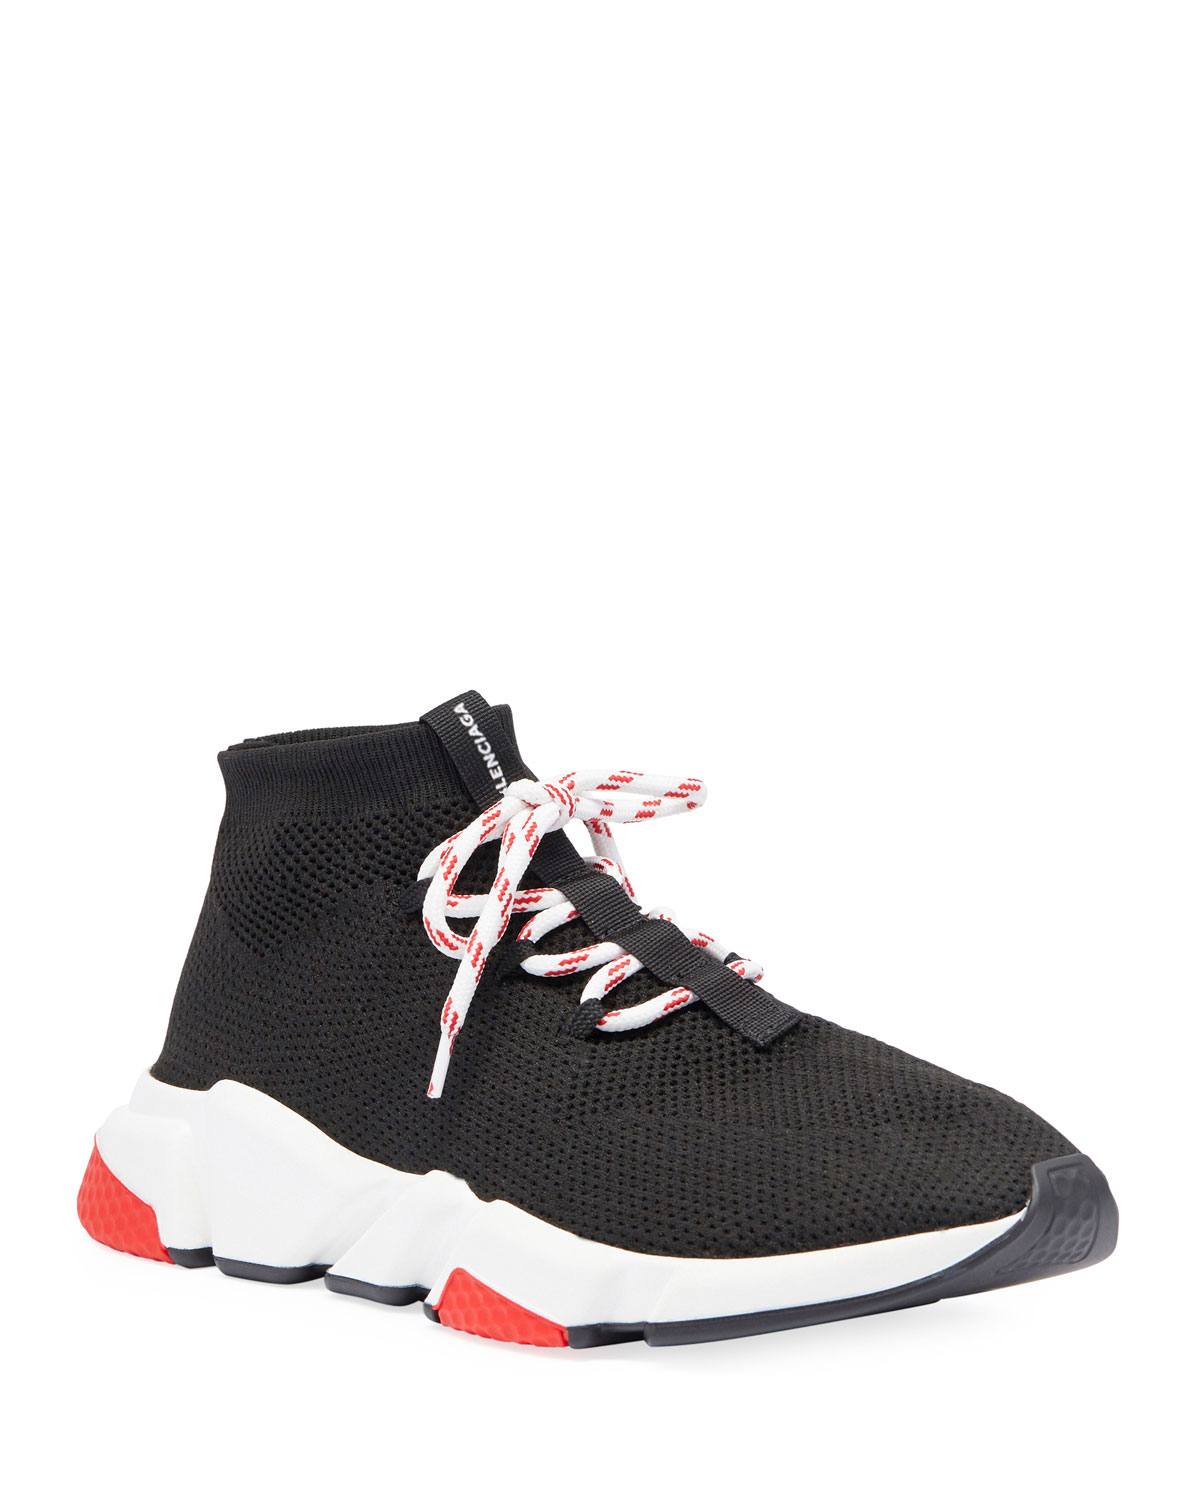 9a1f72895538 Balenciaga Men s Speed Lace-Up Mesh Sneakers